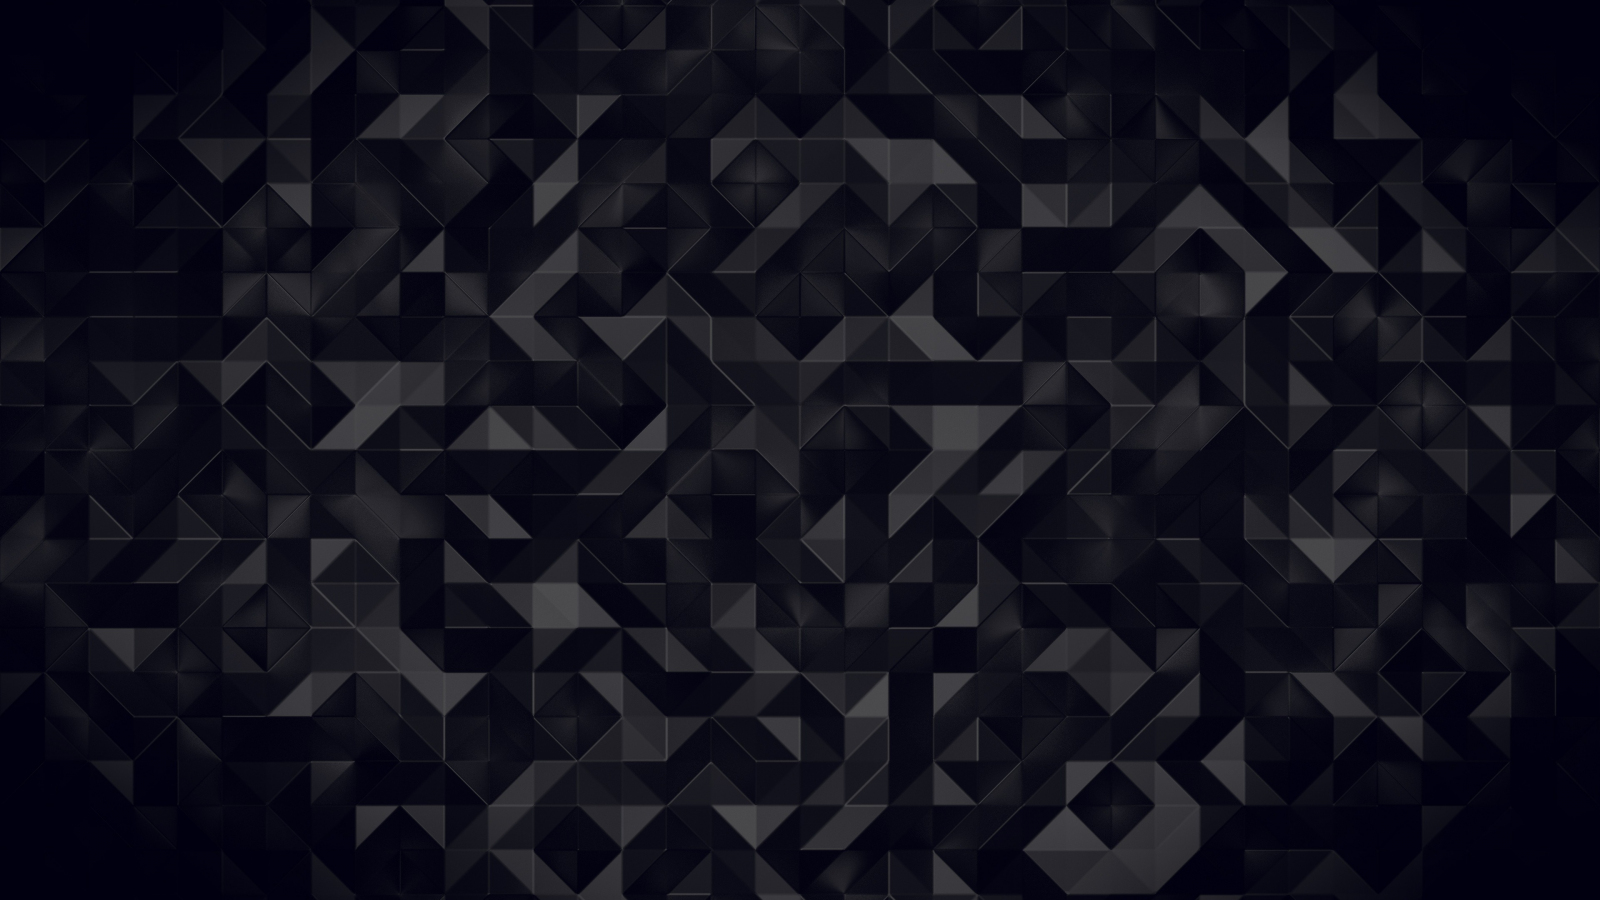 Download 1600x900 Wallpaper Dark Triangles Abstract Pattern